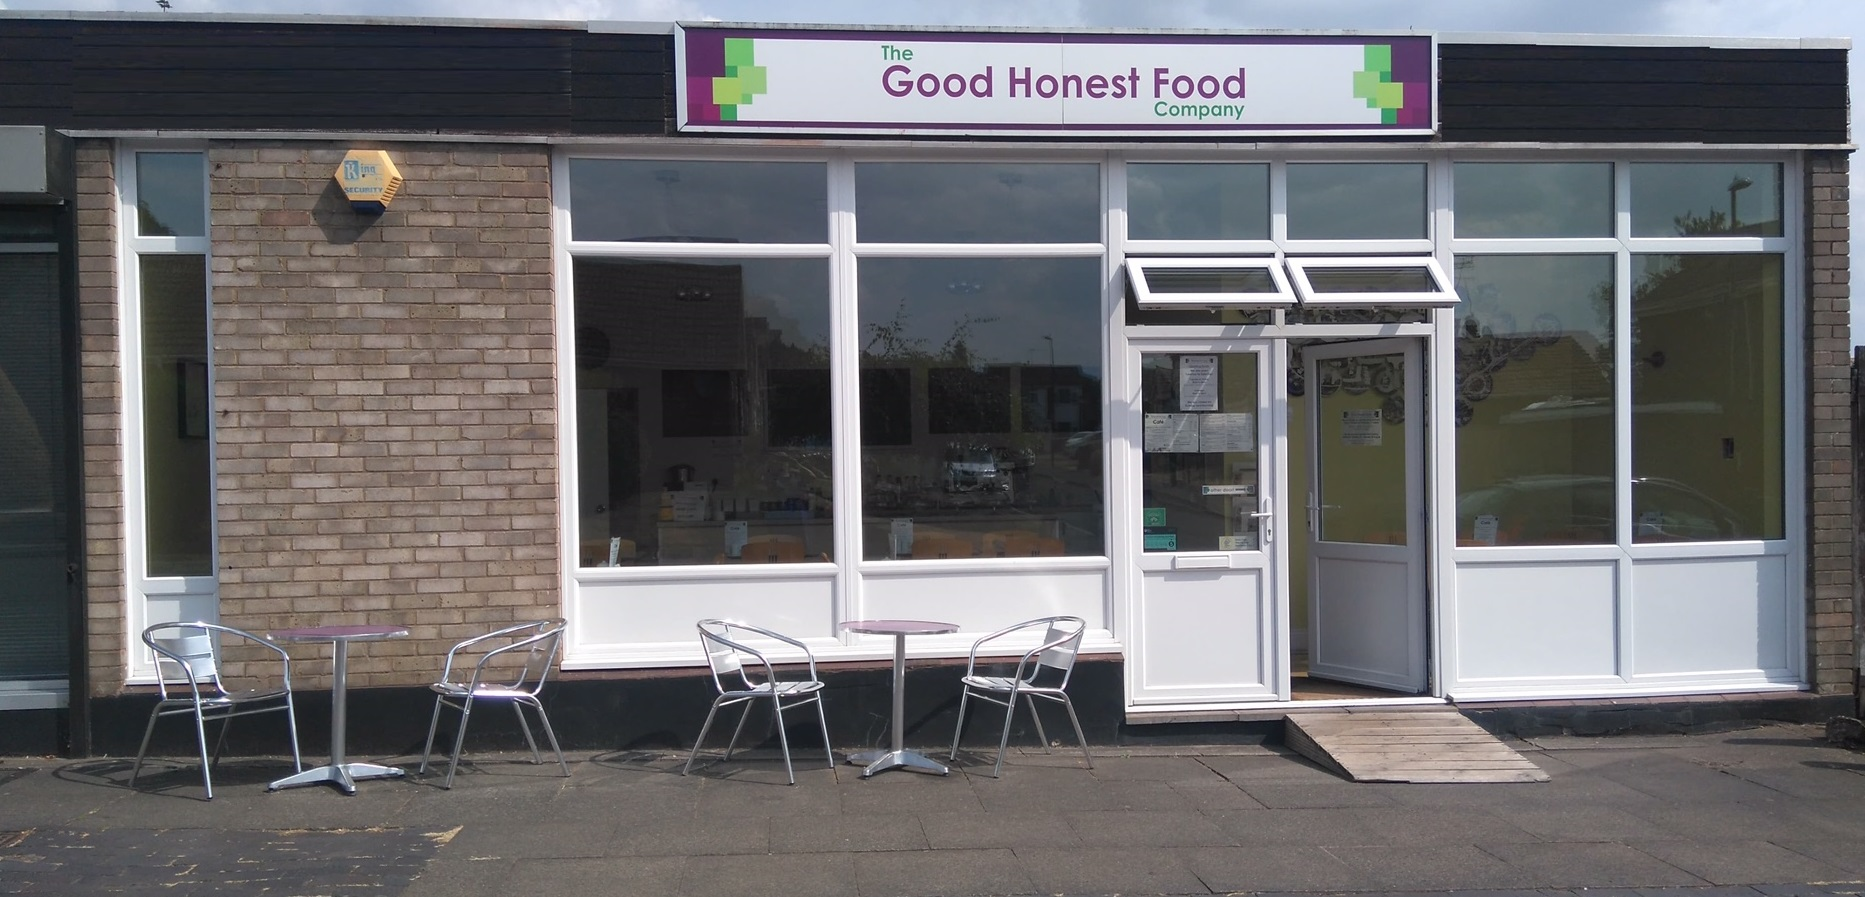 The Good Honest Food Company, Coventry